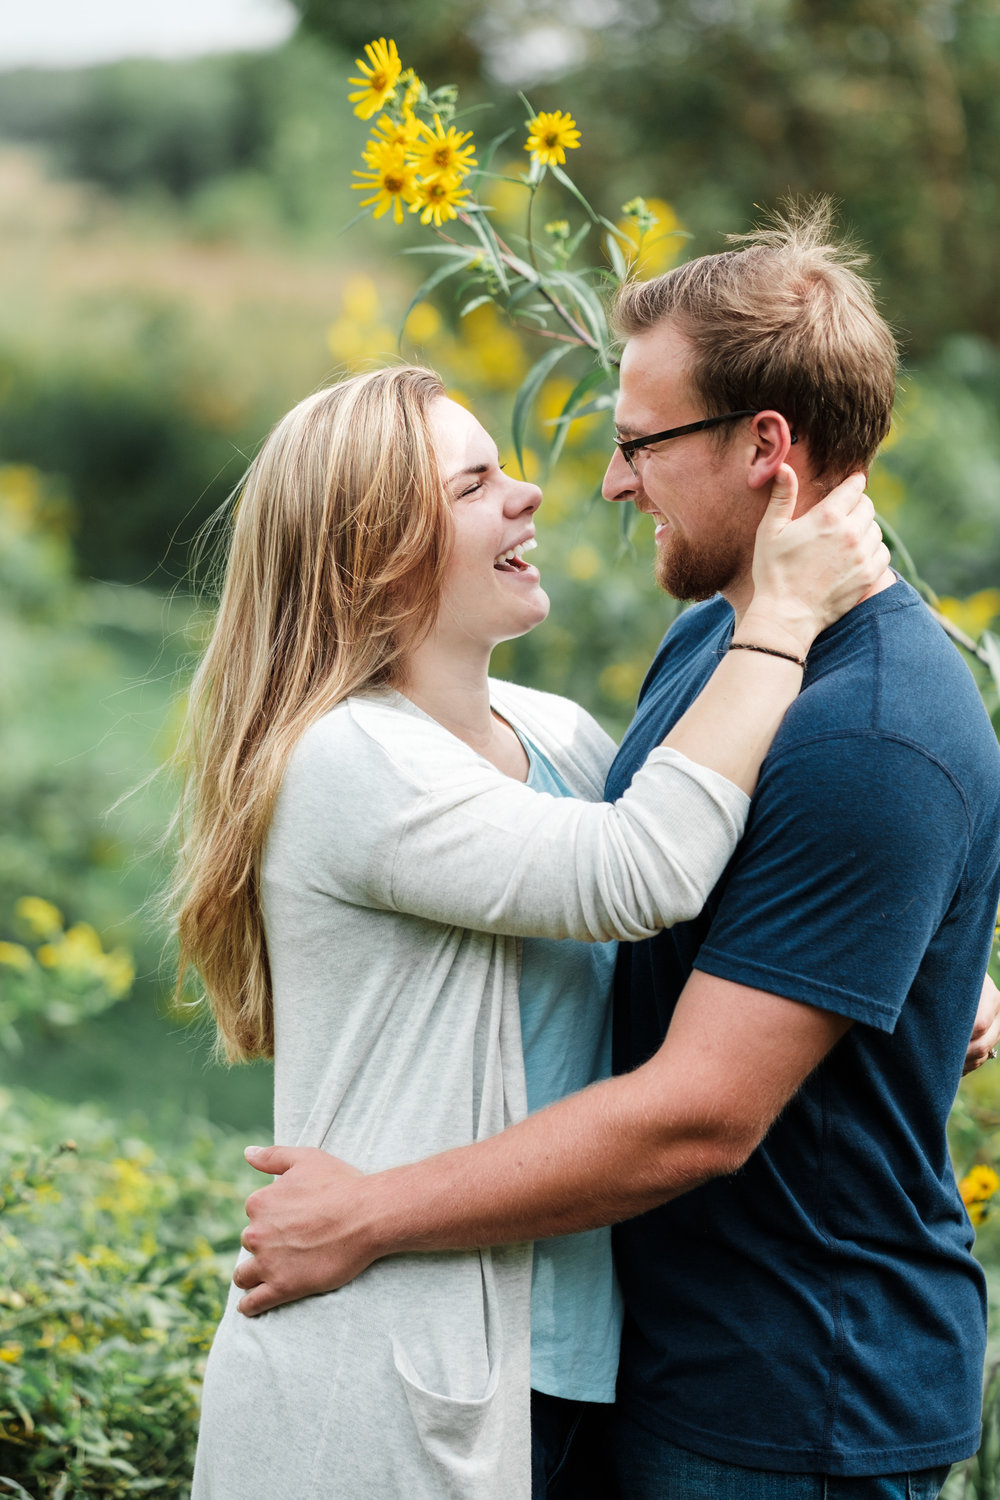 Wisconsin couple, The Fields Reserve Wedding, The Fields Reserve Photographer, Byron Photographer, Rockford Photographer, Best Photographer, Rock Cut State Park, Park Engagement, Destination Engagement, Colorado Engagement, Mountain Engagement, Doggy Engagement